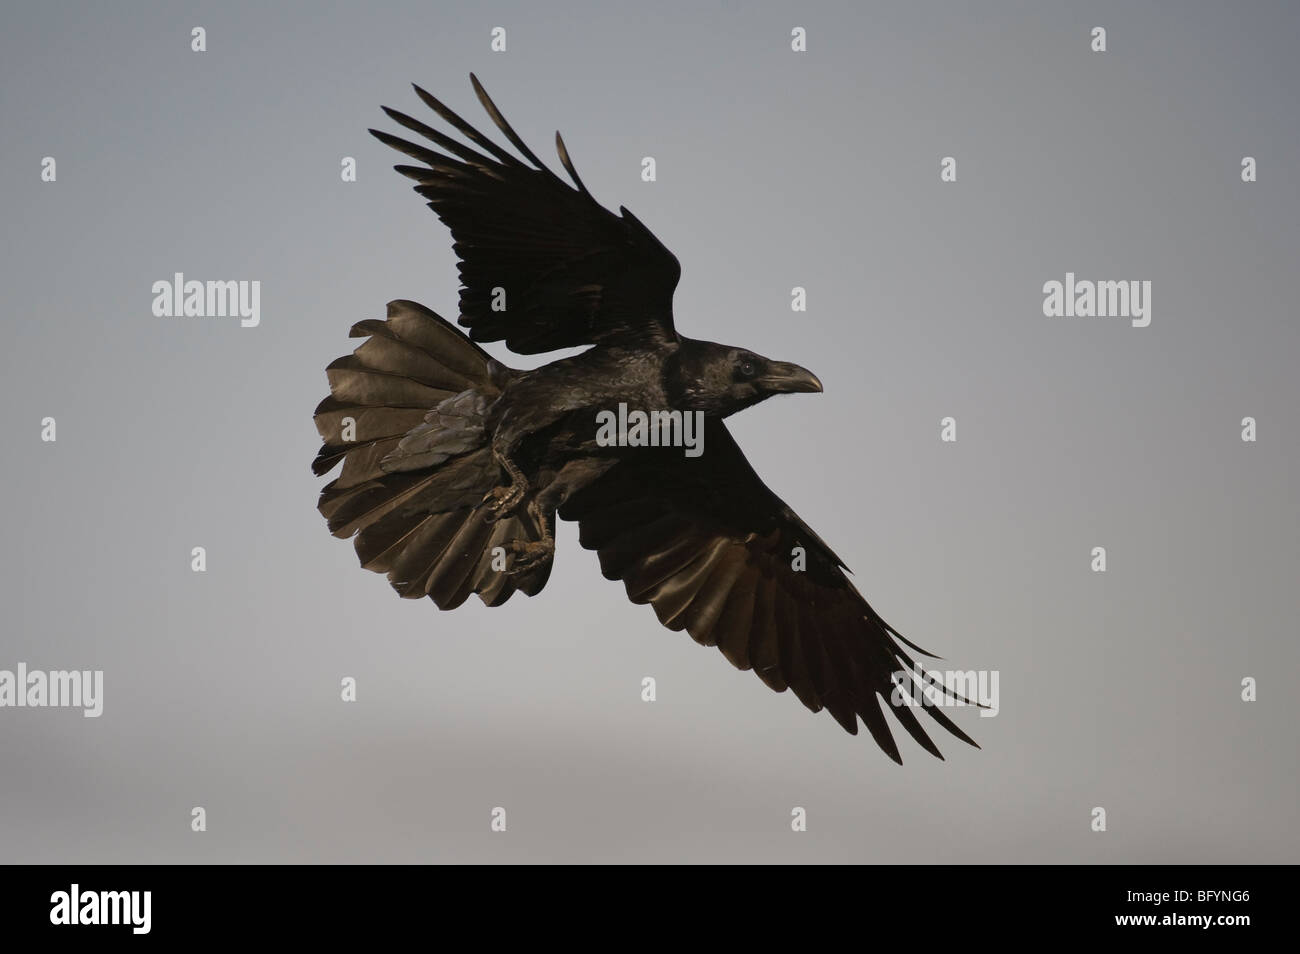 Common raven Corvus corax in flight. Catalonian Pyrenees, Spain. - Stock Image